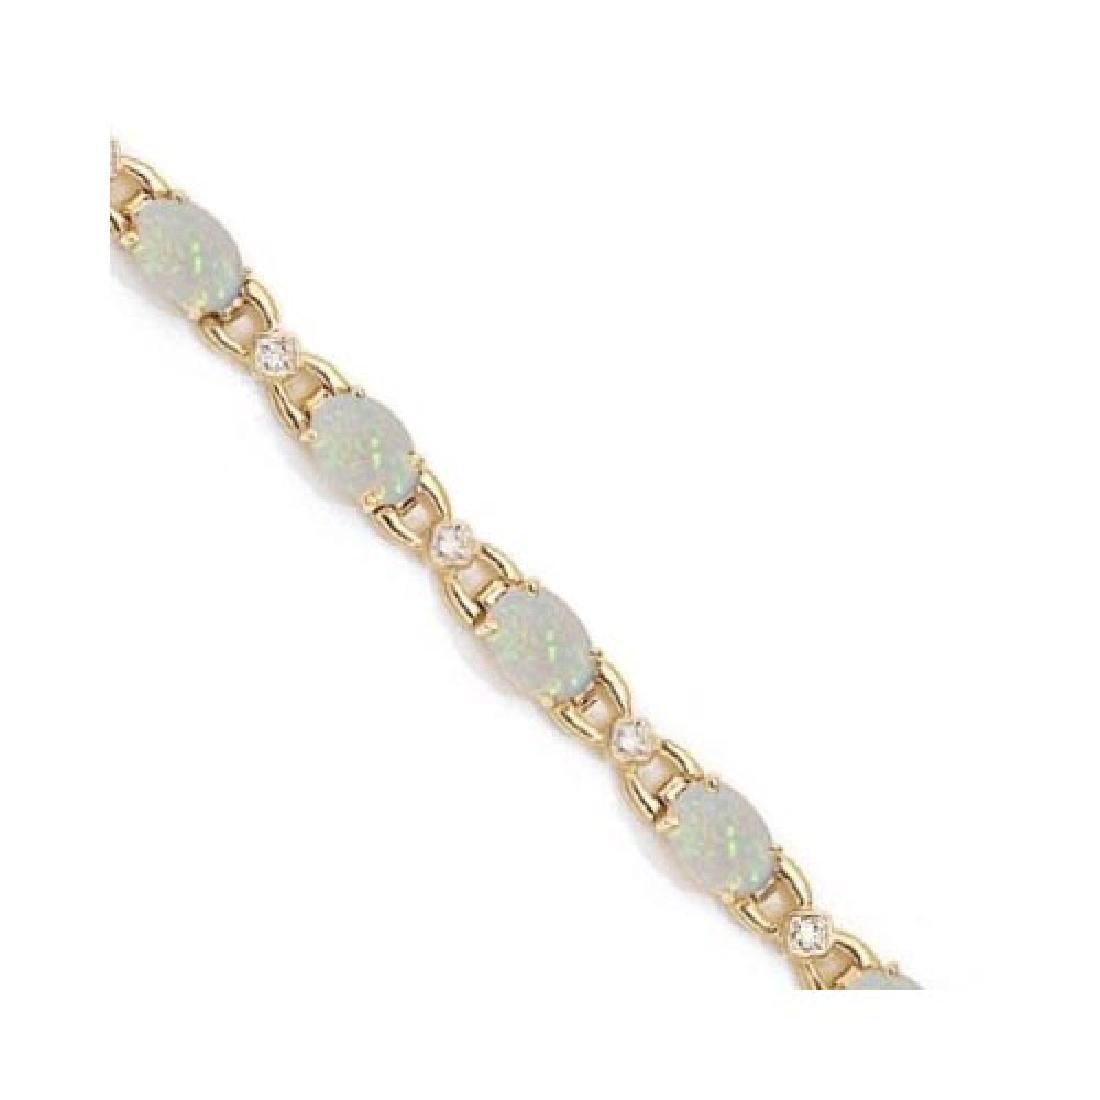 Diamond and Opal Bracelet 14k Yellow Gold (10.26 ctw)